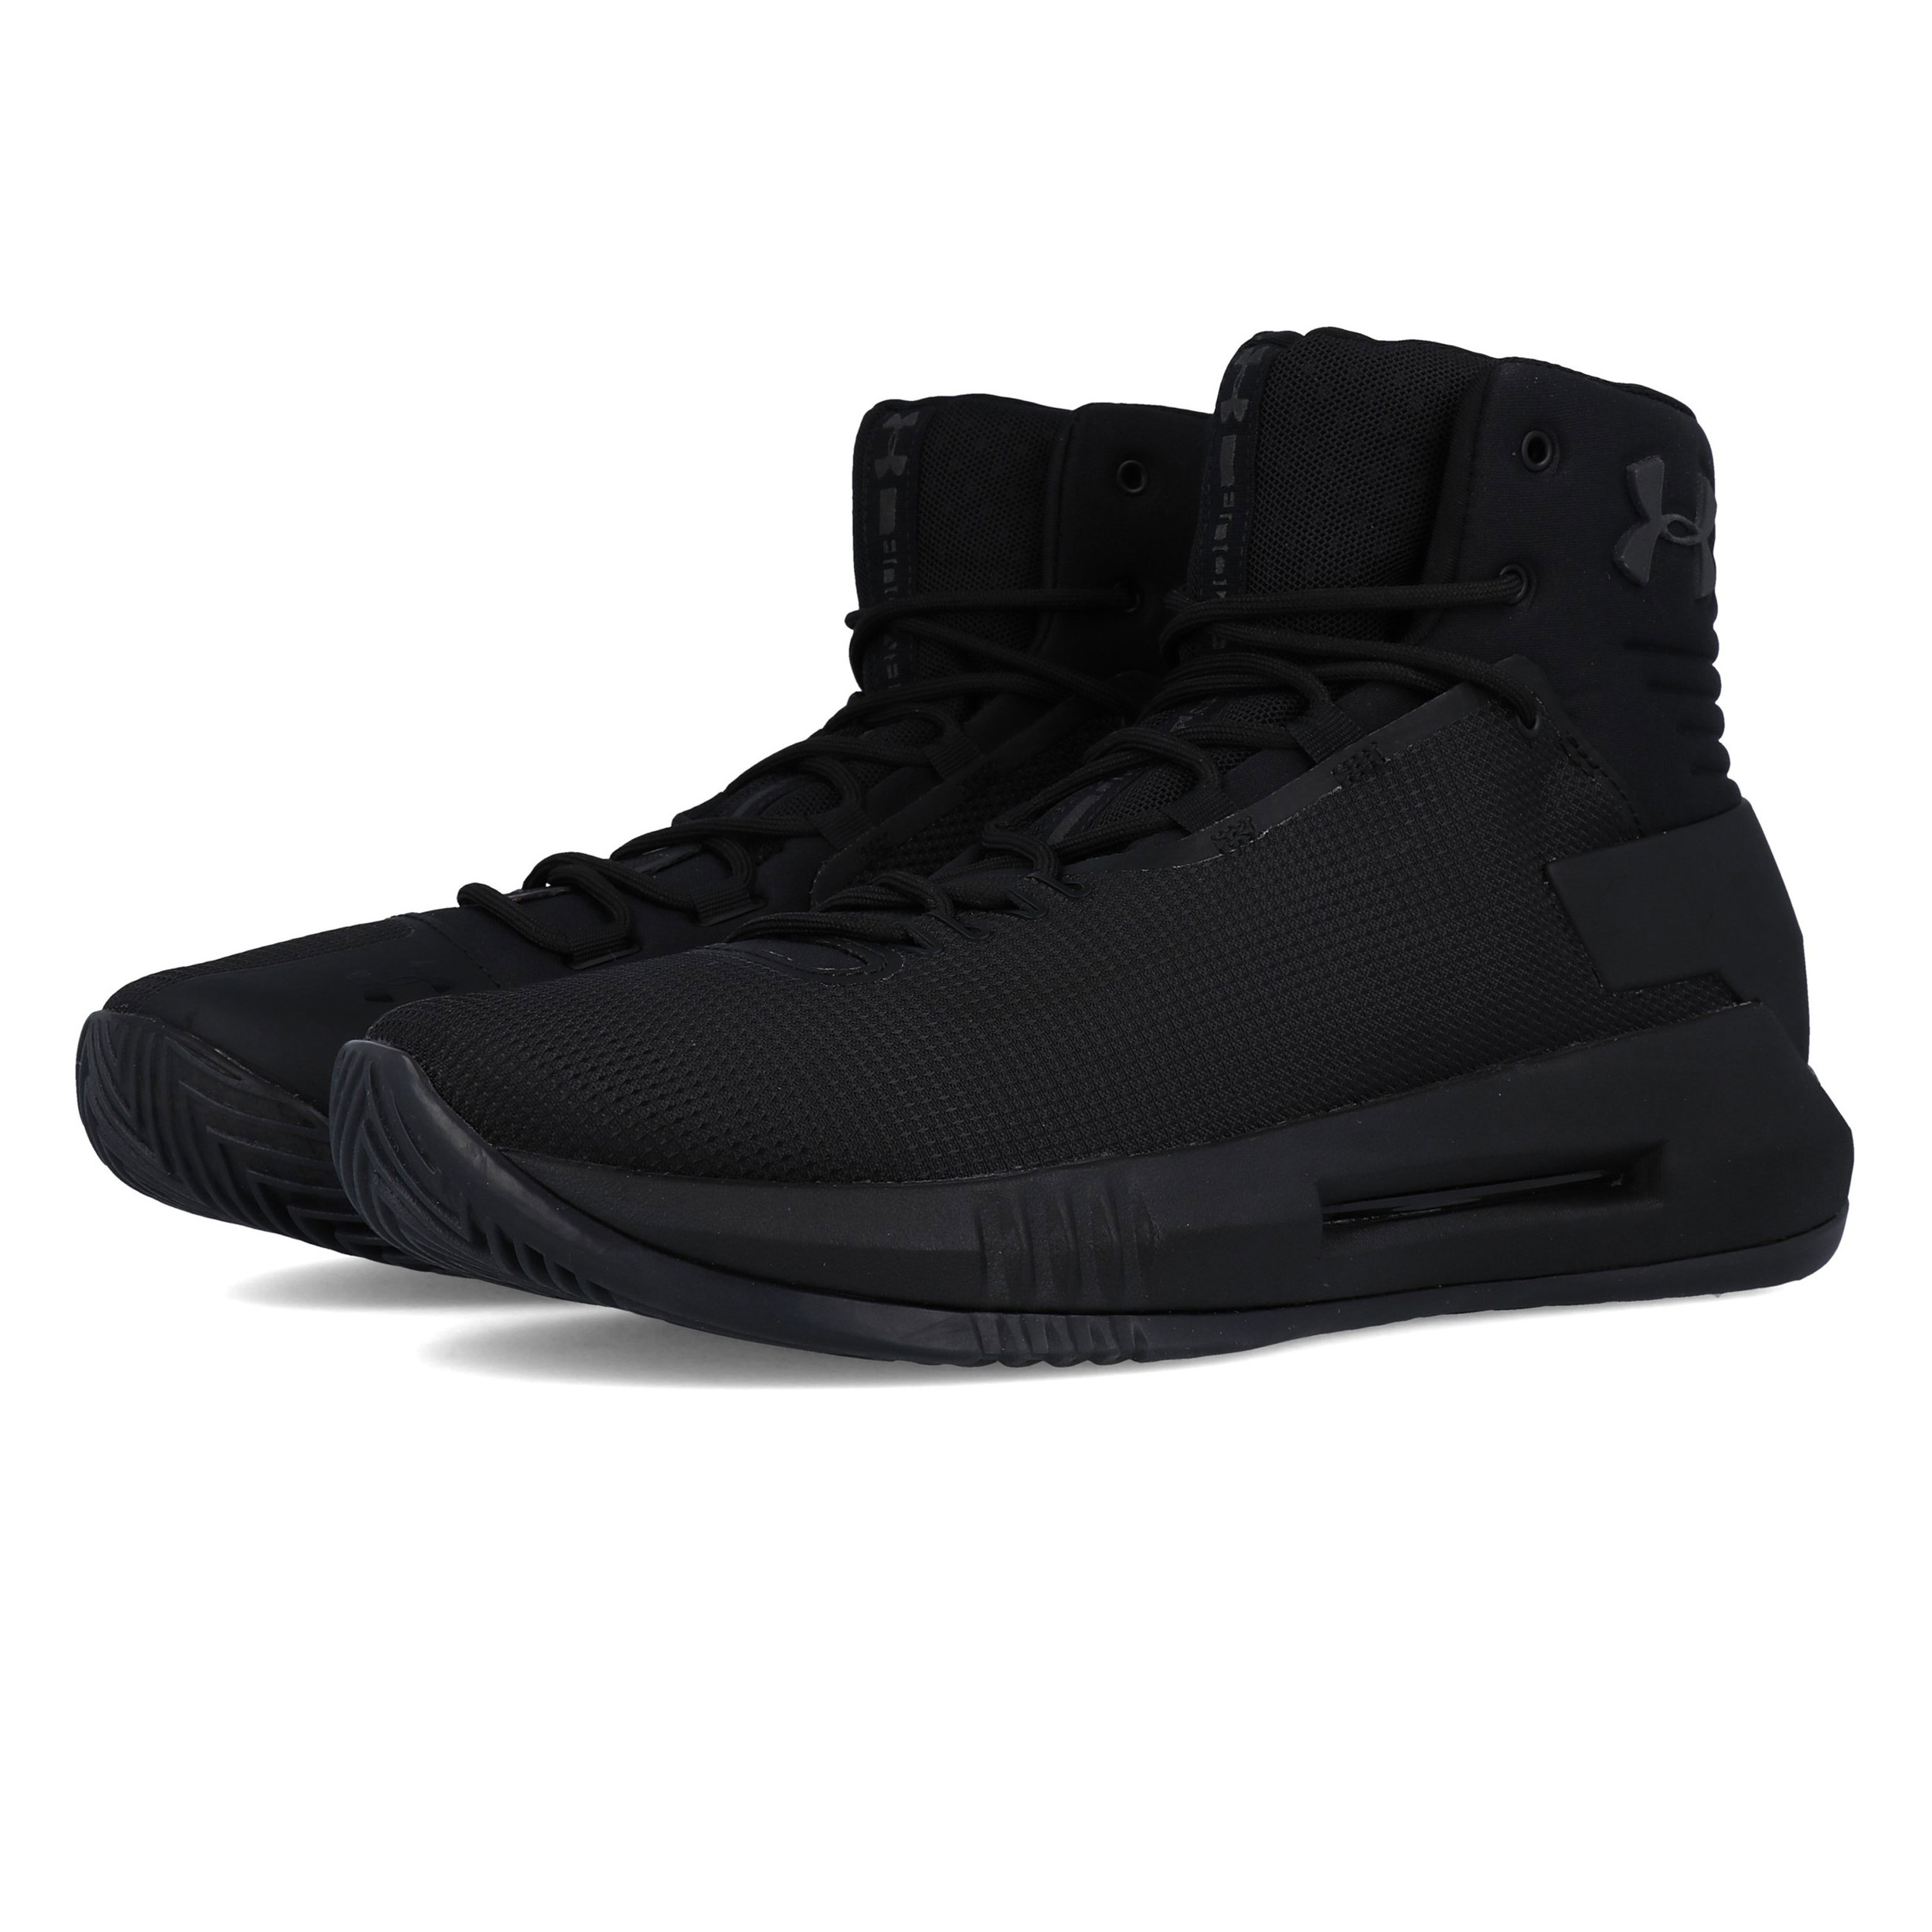 992185da7893 Under Armour Mens Drive 4 Basketball Shoes Black Sports Breathable  Lightweight